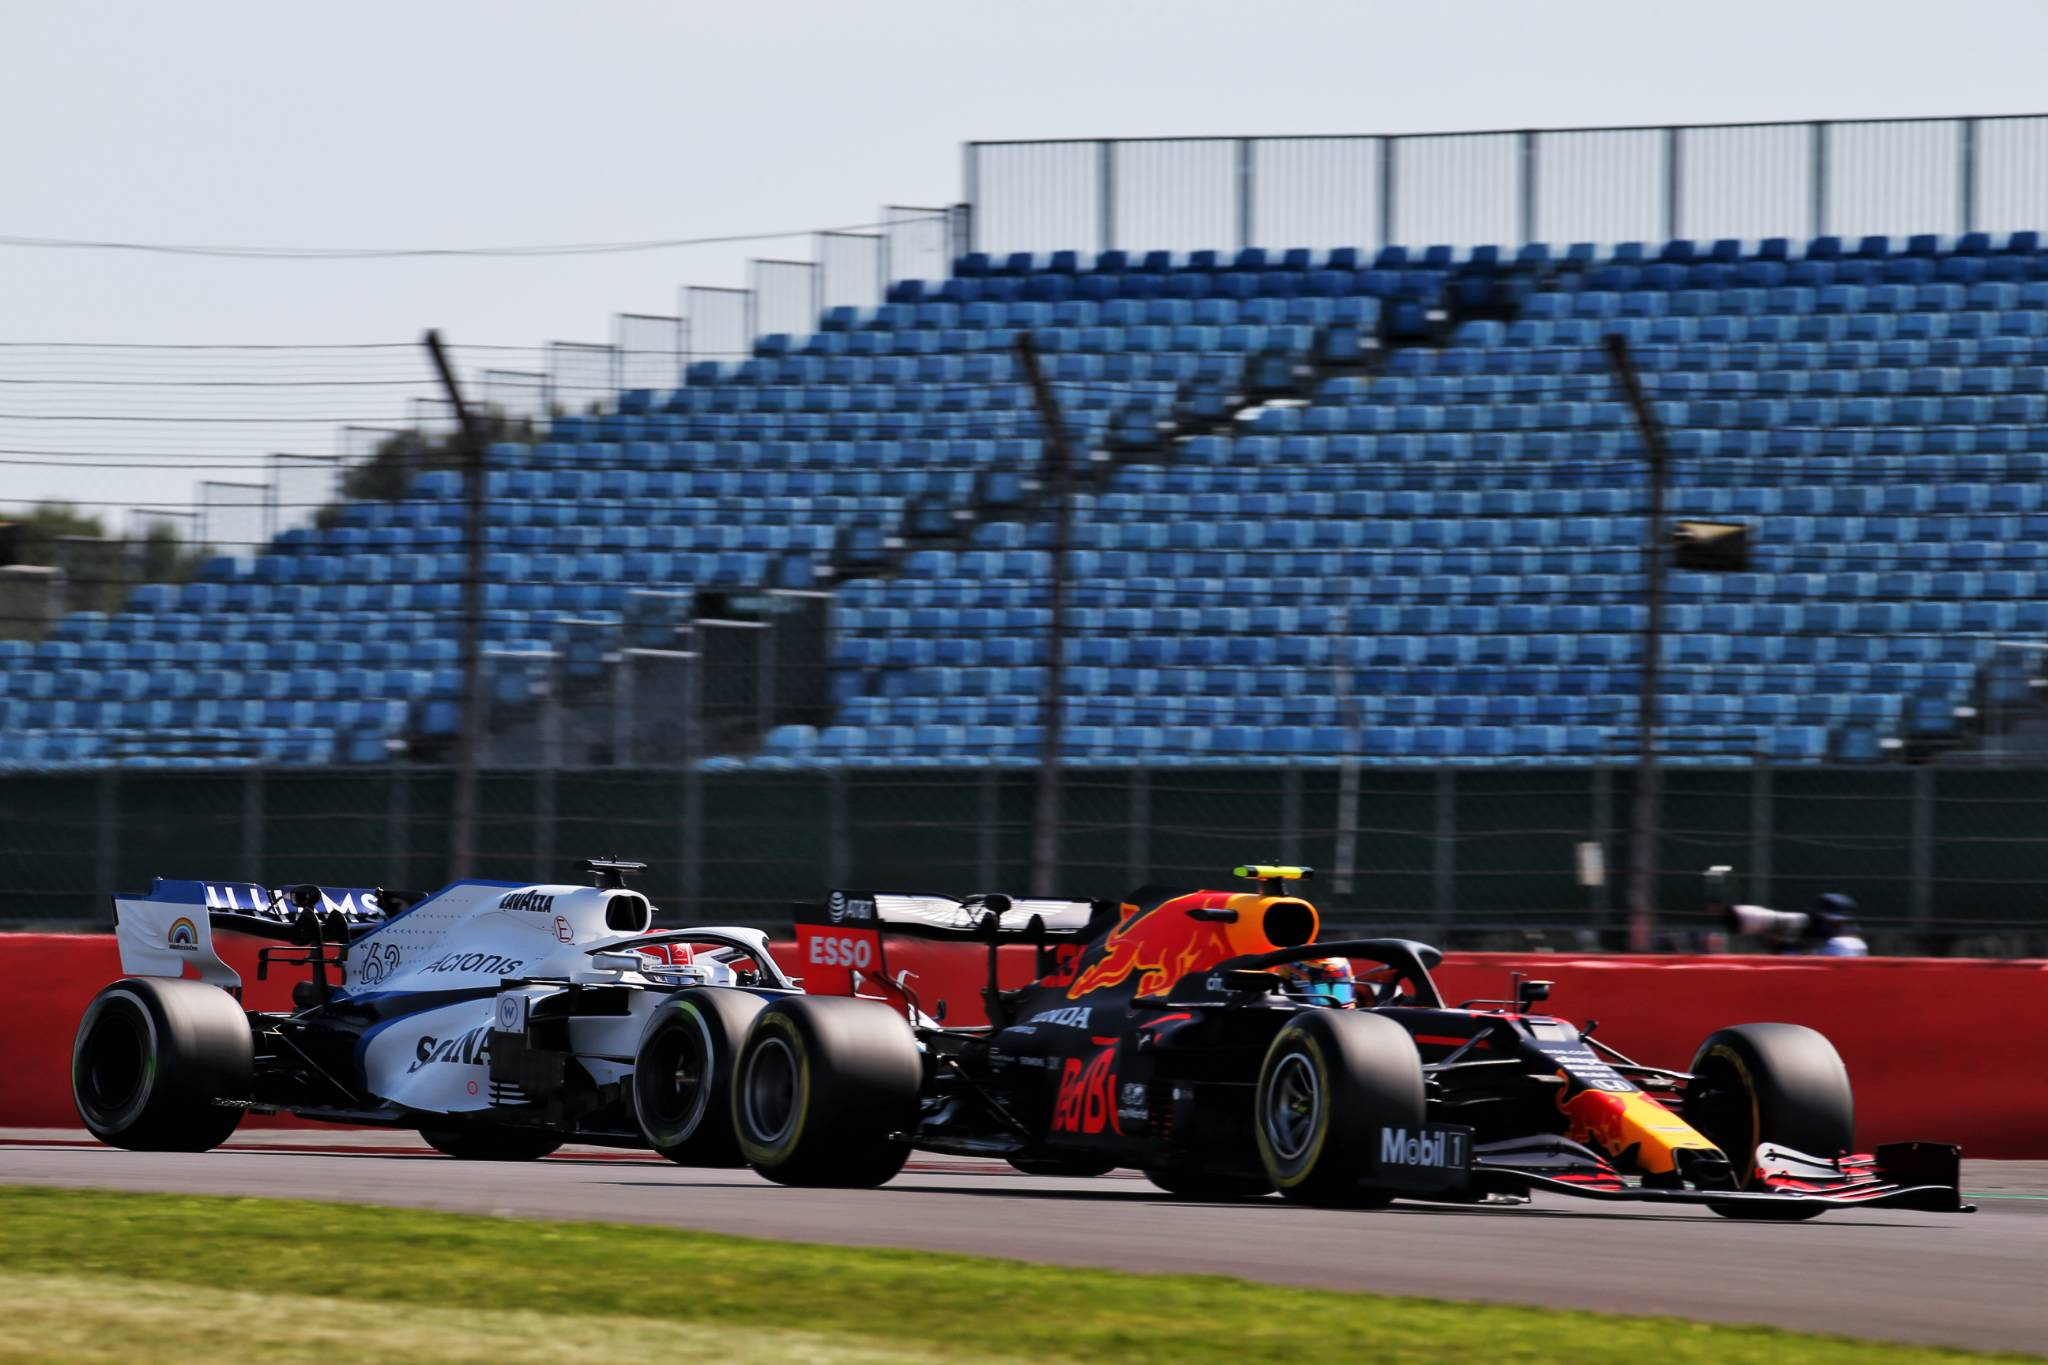 Alexander Albon (THA) Red Bull Racing RB16 leads George Russell (GBR) Williams Racing FW43.